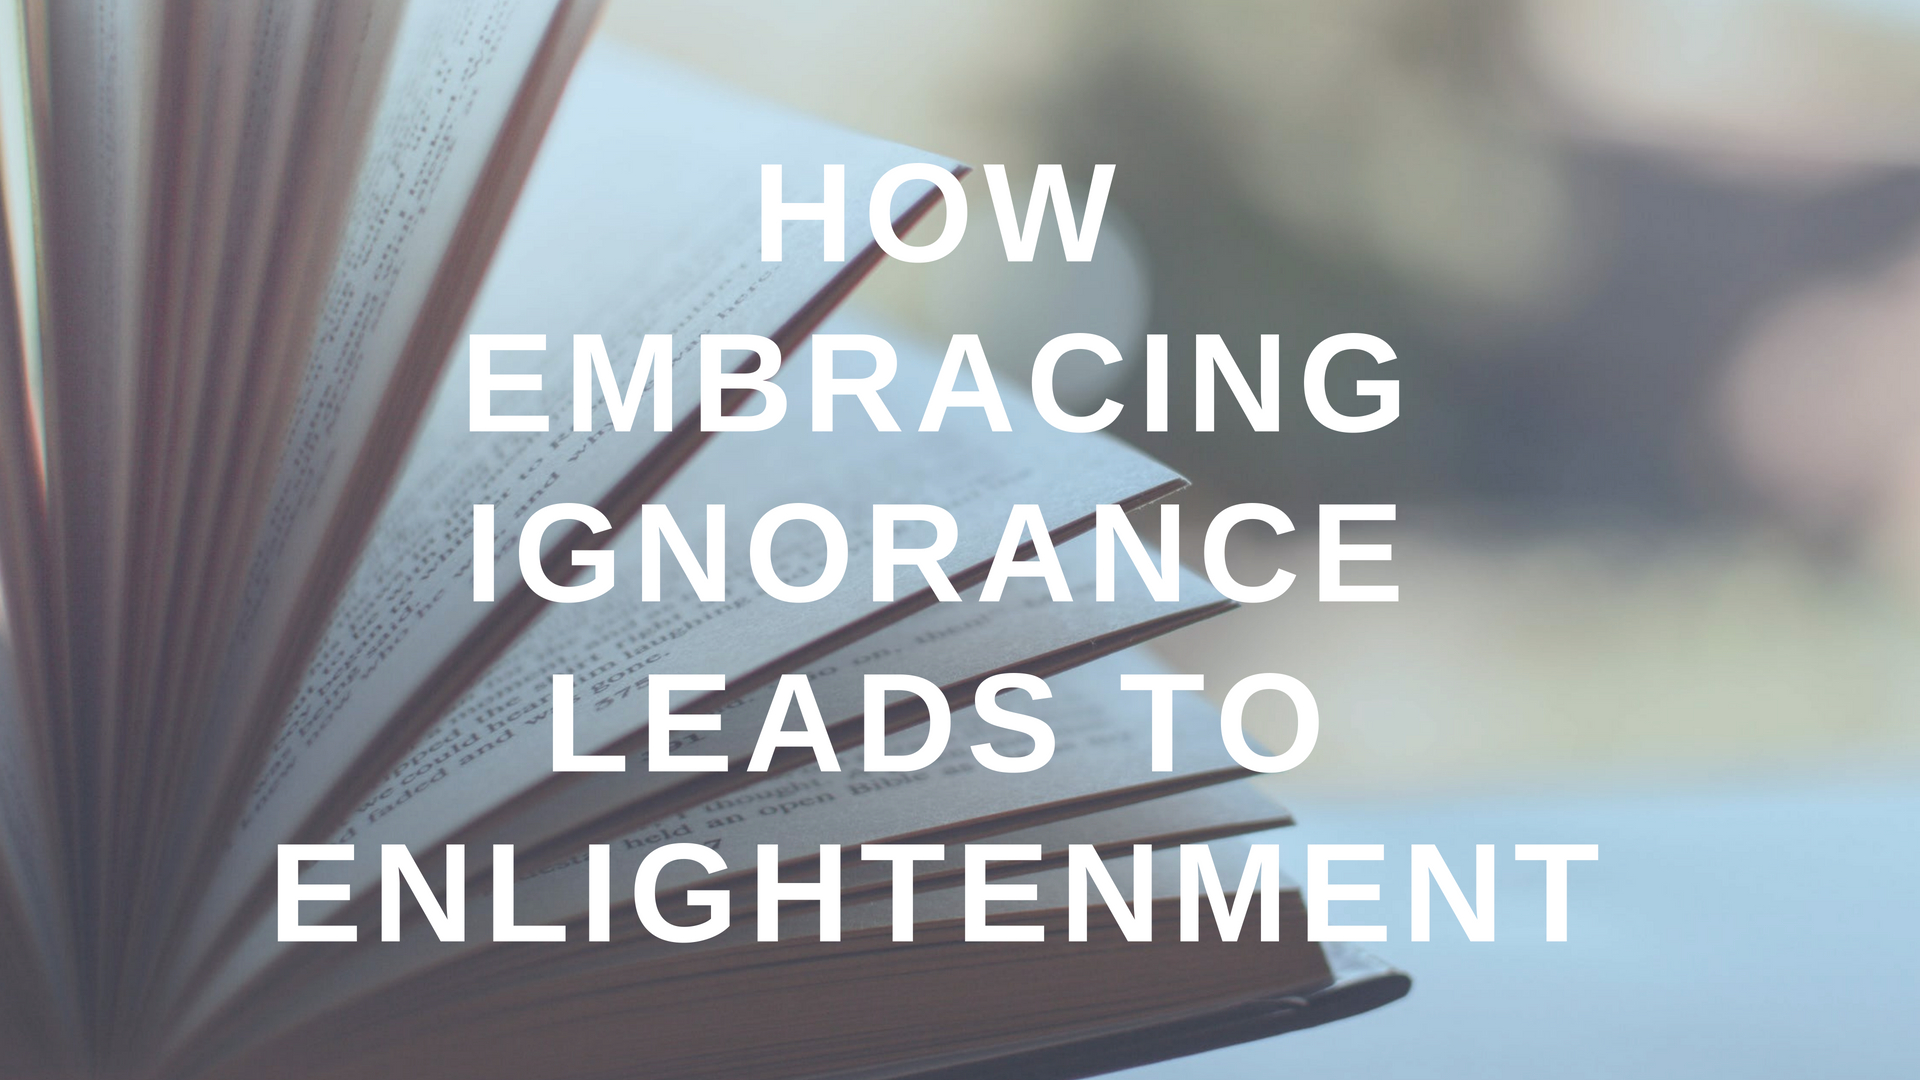 How Embracing Ignorance Leads to Enlightenment